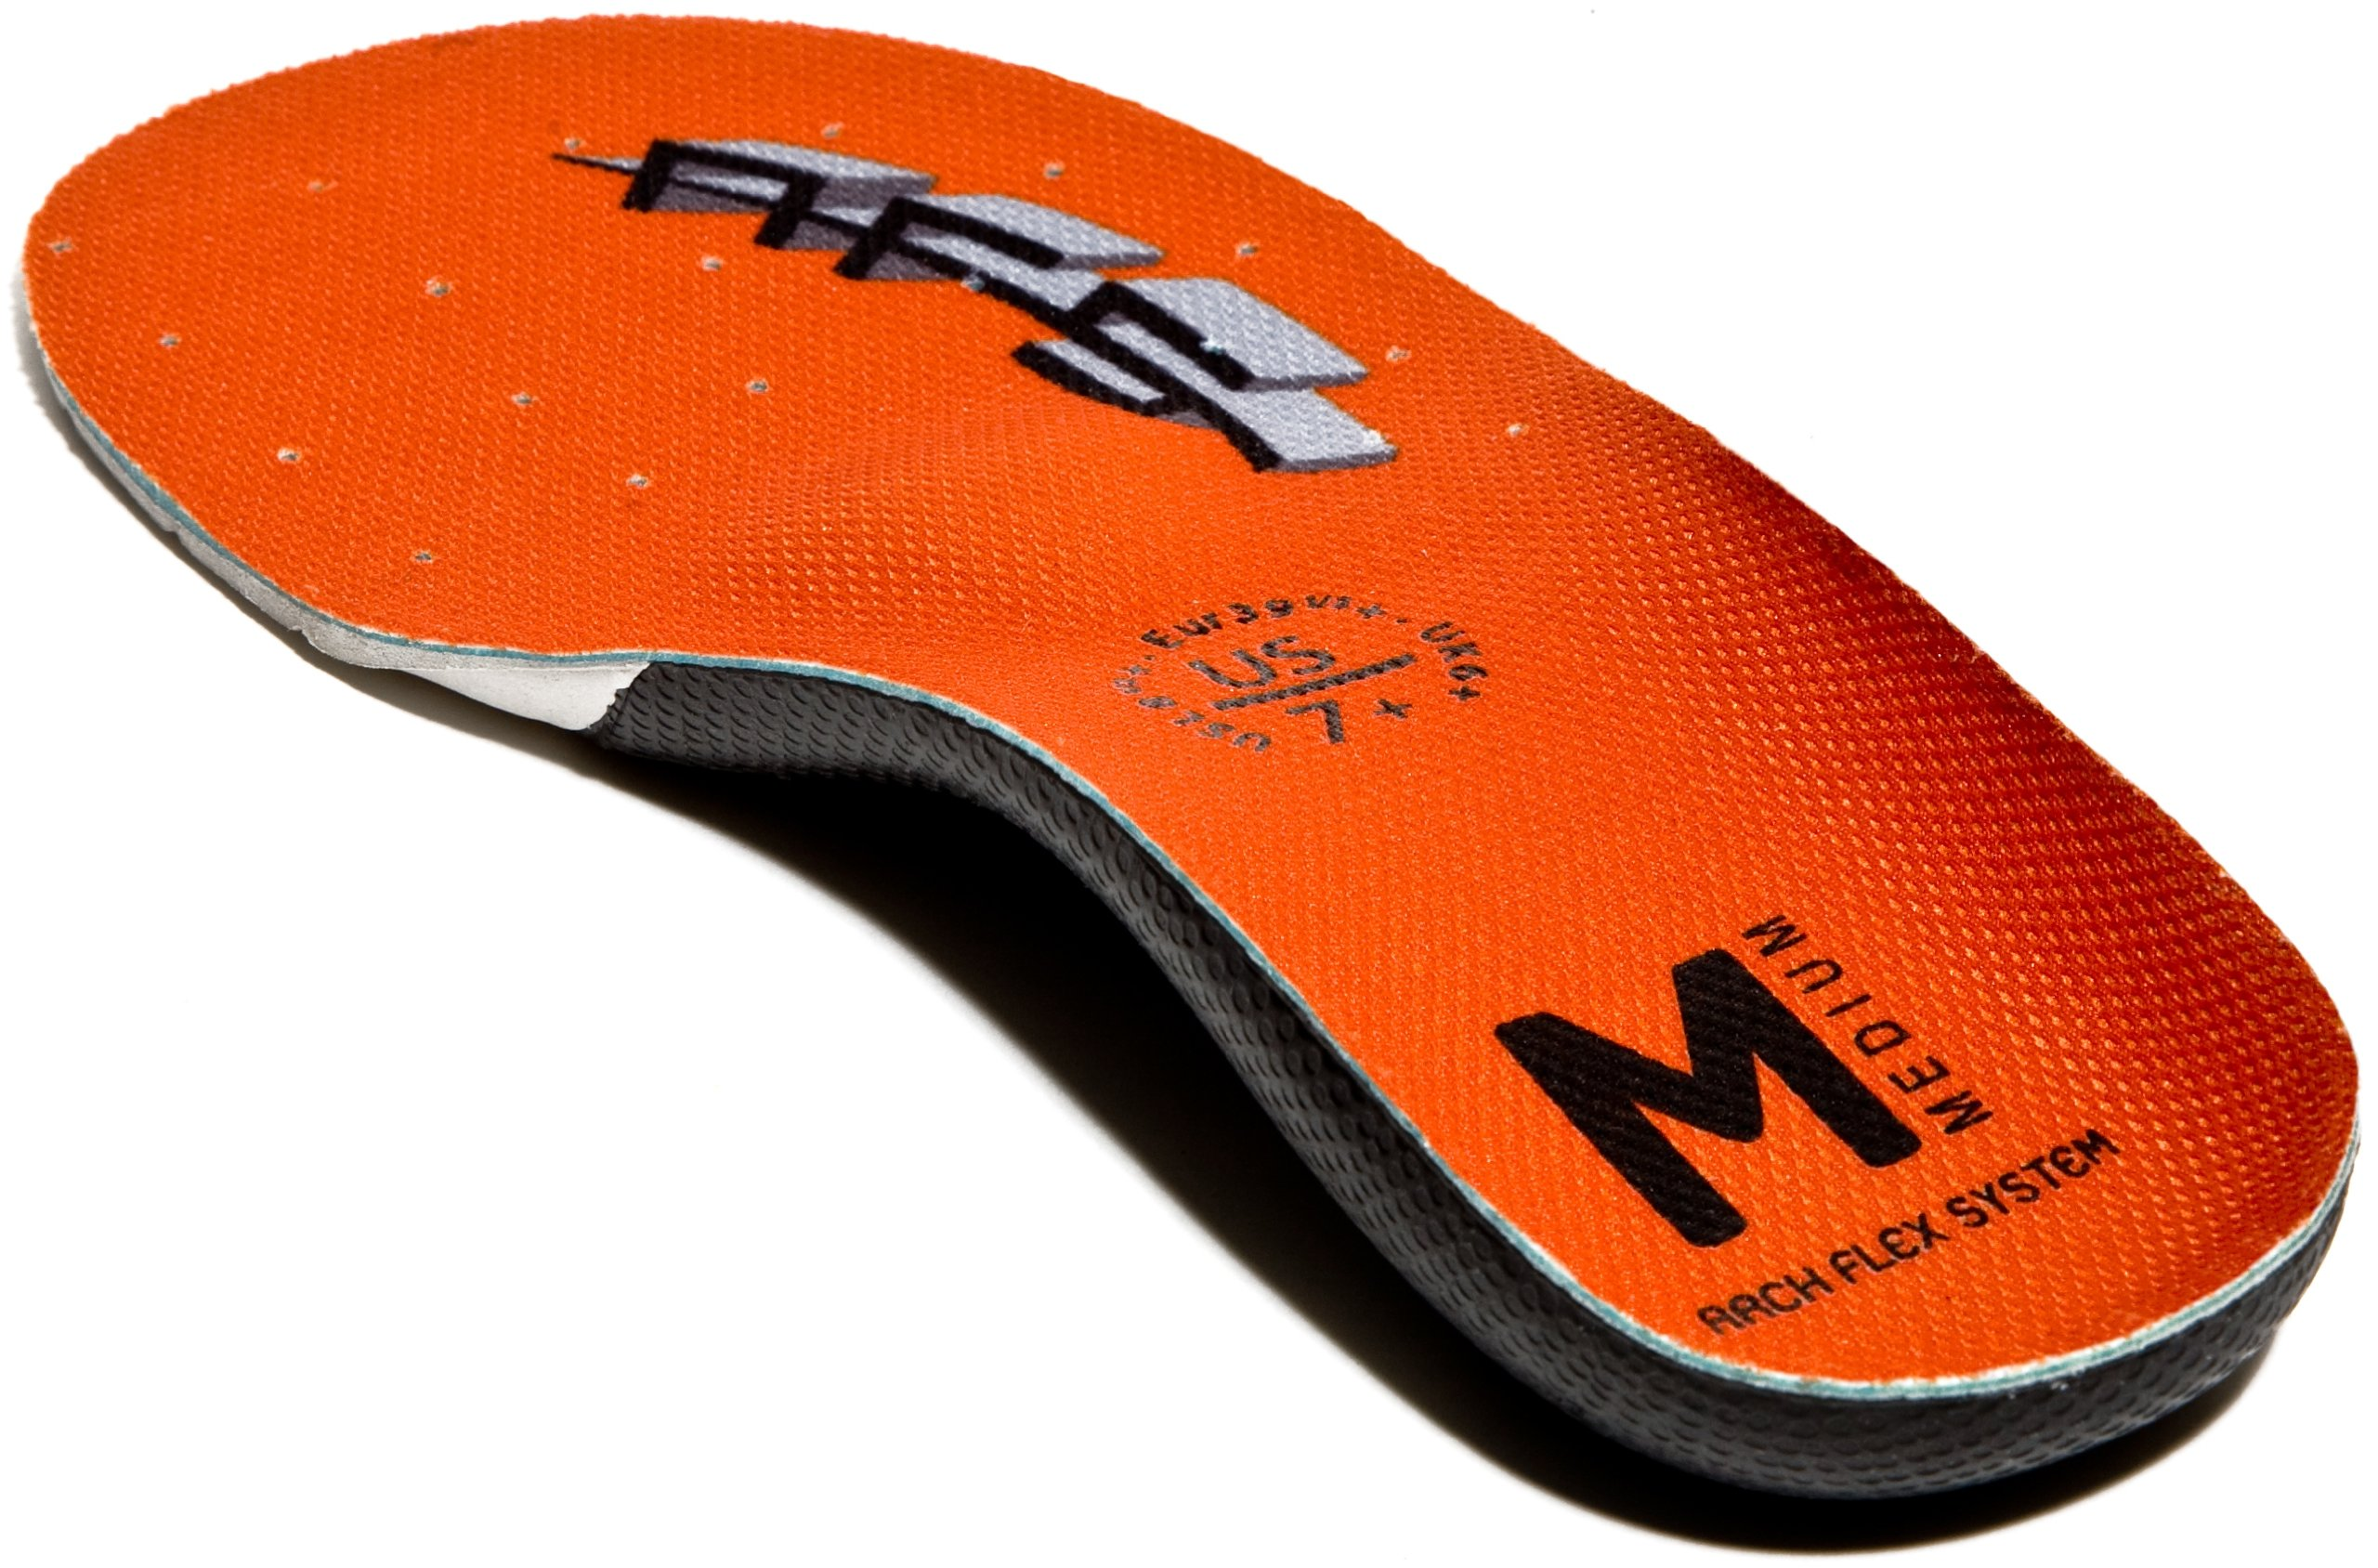 ArchFlexSystem Adult Upgrade Replacement Insole, Medium Orange, 5 by ArchFlexSystem Footbeds